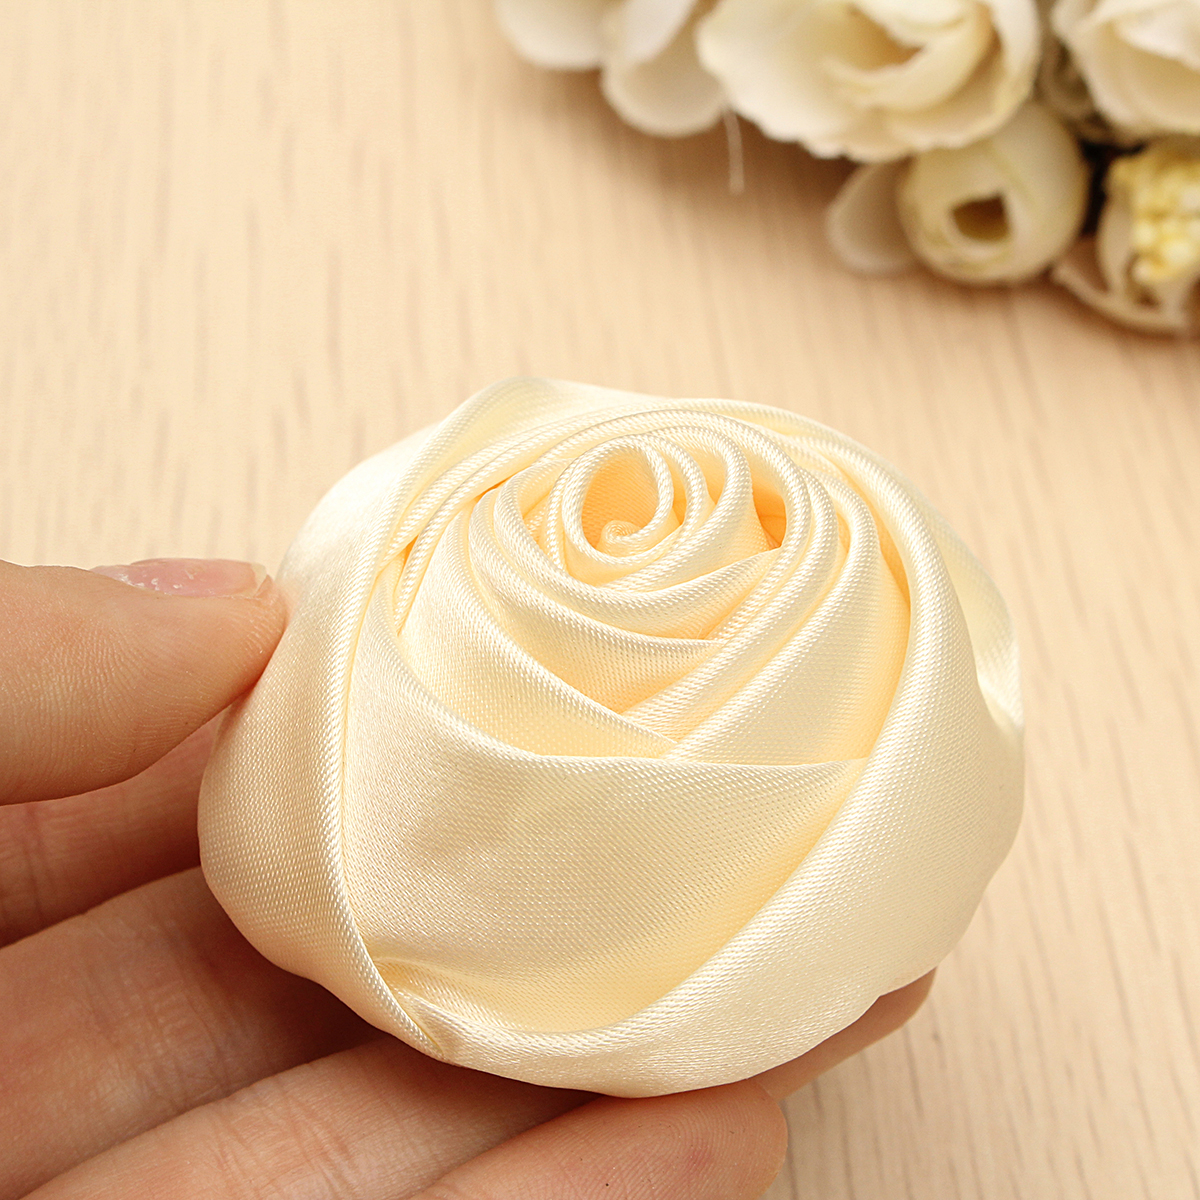 12Pcs 55mm Beige Artificial Silk Satin Roses Flower Heads Wedding Decoration DIY Craft